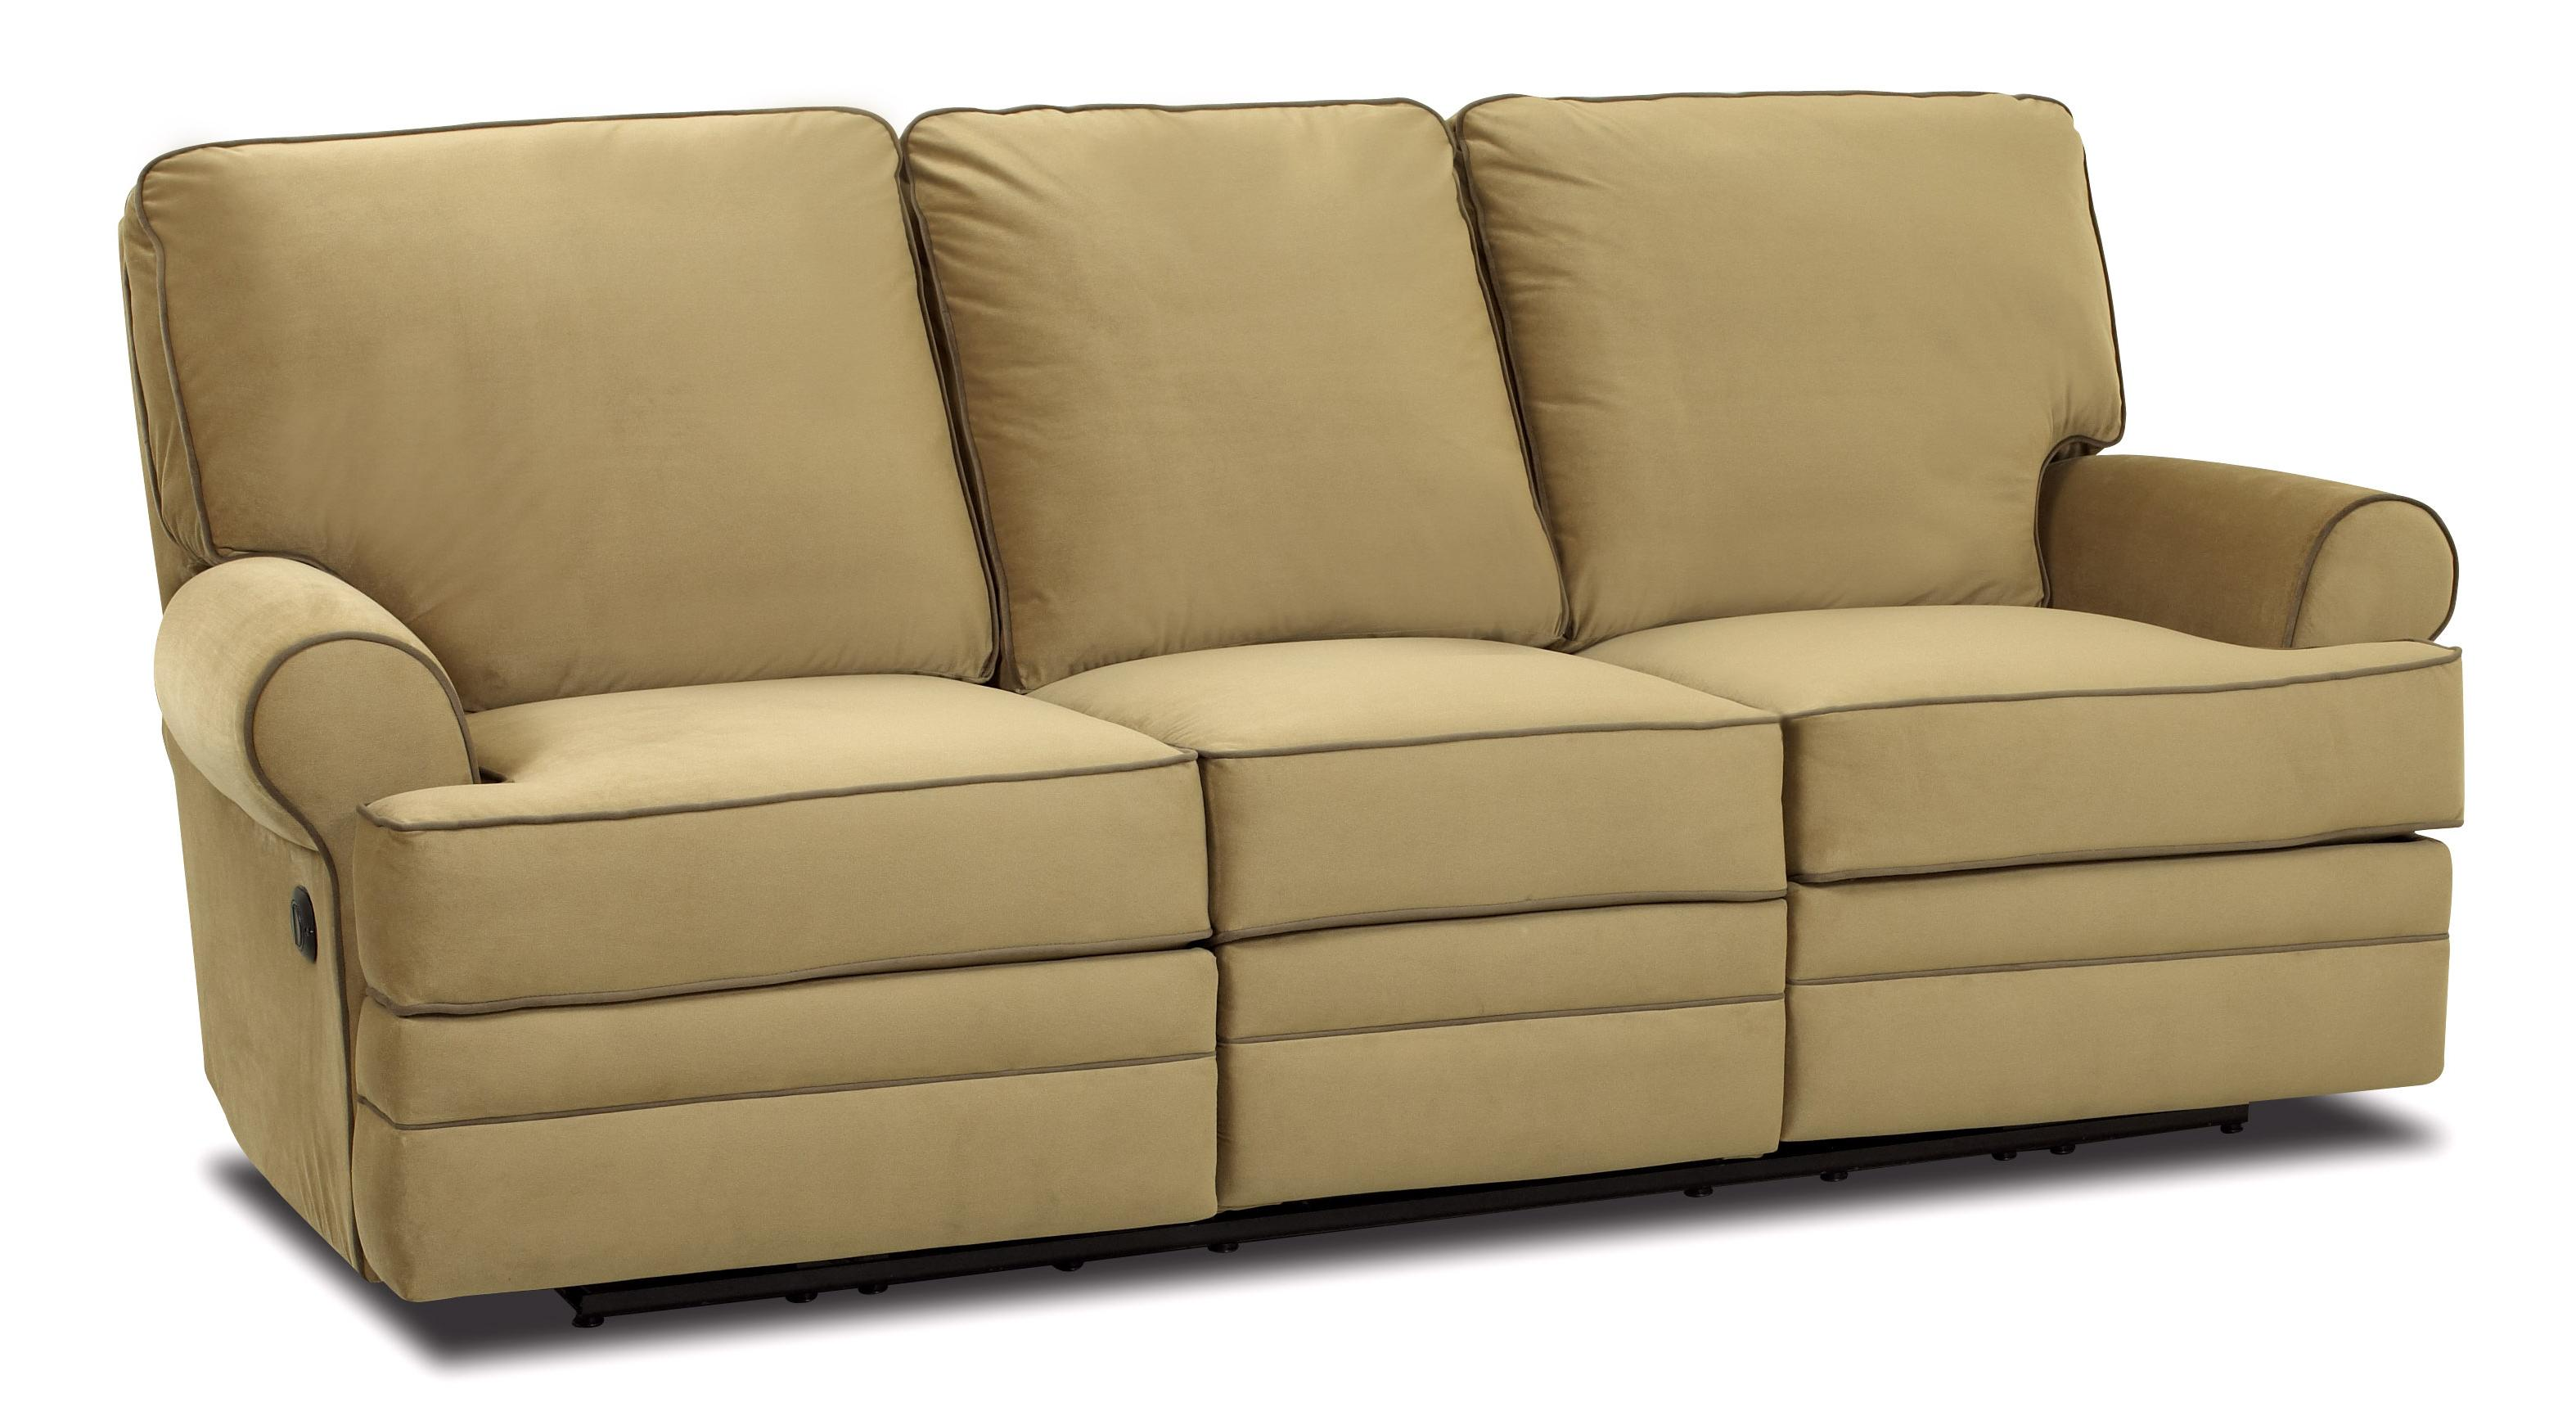 klaussner grand power reclining sofa sectionnel liquidation gatineau belleview dual darvin